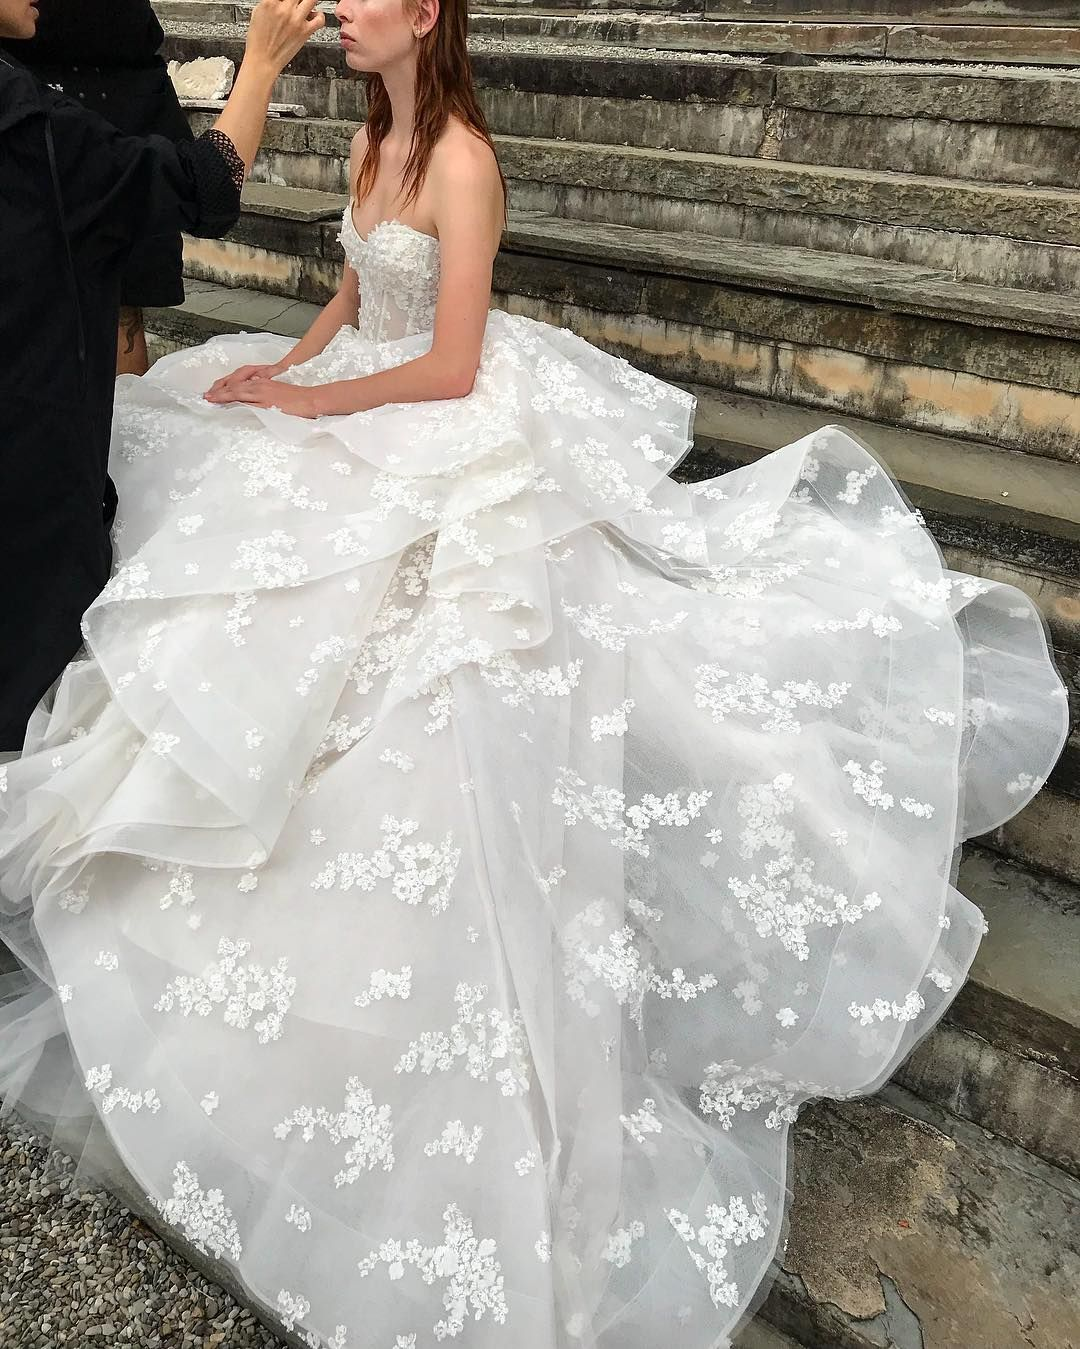 Monique Lhuillier Bride On Instagram Finishing Touches